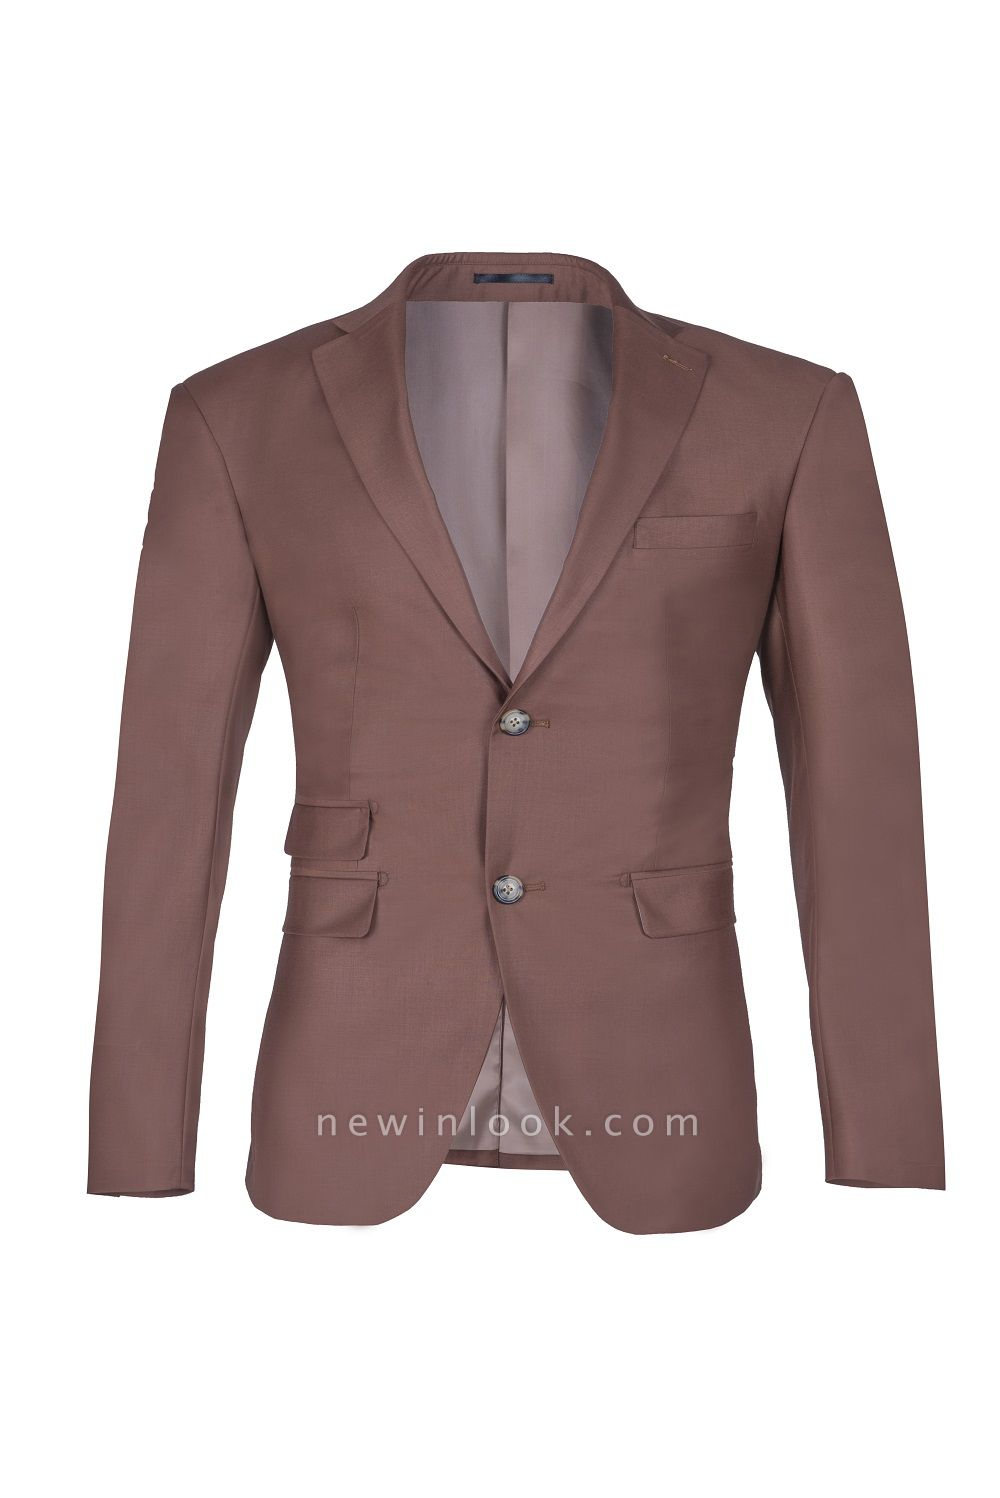 Chocolate Stylish Design Peak Lapel Two Button Single Breasted Chambelanes Tuxedos